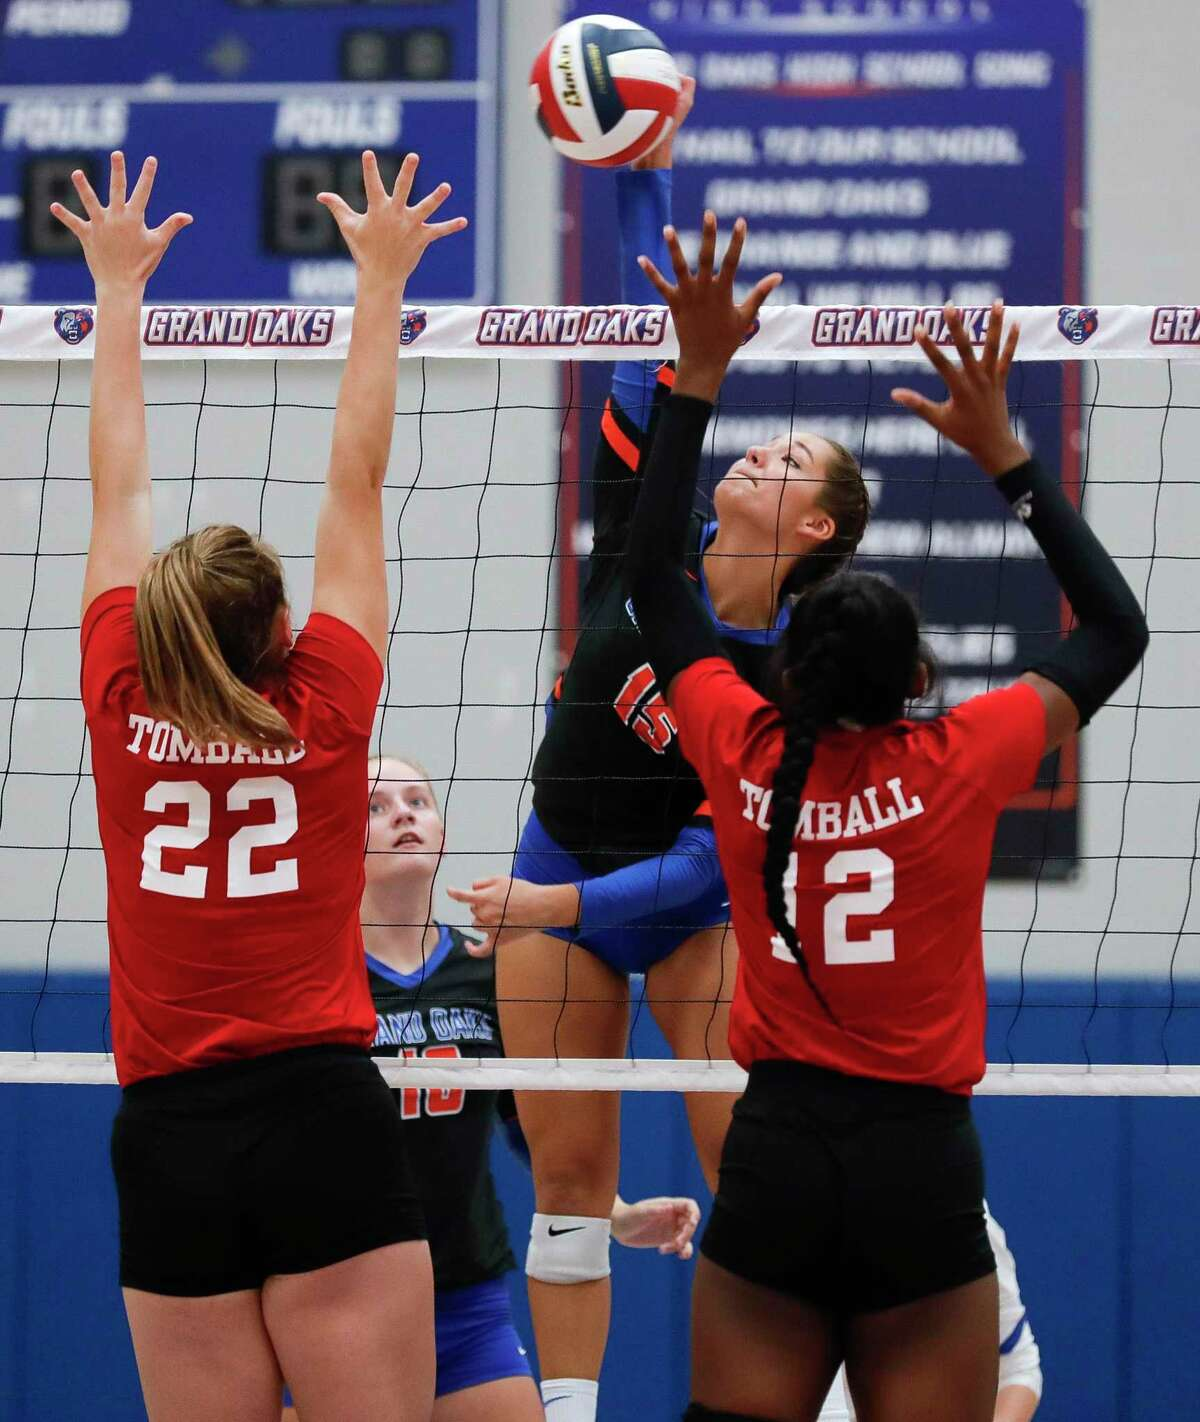 Grand Oaks outside hitter Aidan Ballard (15) gets a shot past Tomball outside hitter Faith Sabatier (22) and middle blocker Aleka Darko (12) during the first set of a non-district high school volleyball match at Grand Oaks High School, Friday, Sept. 18, 2020, in Spring.